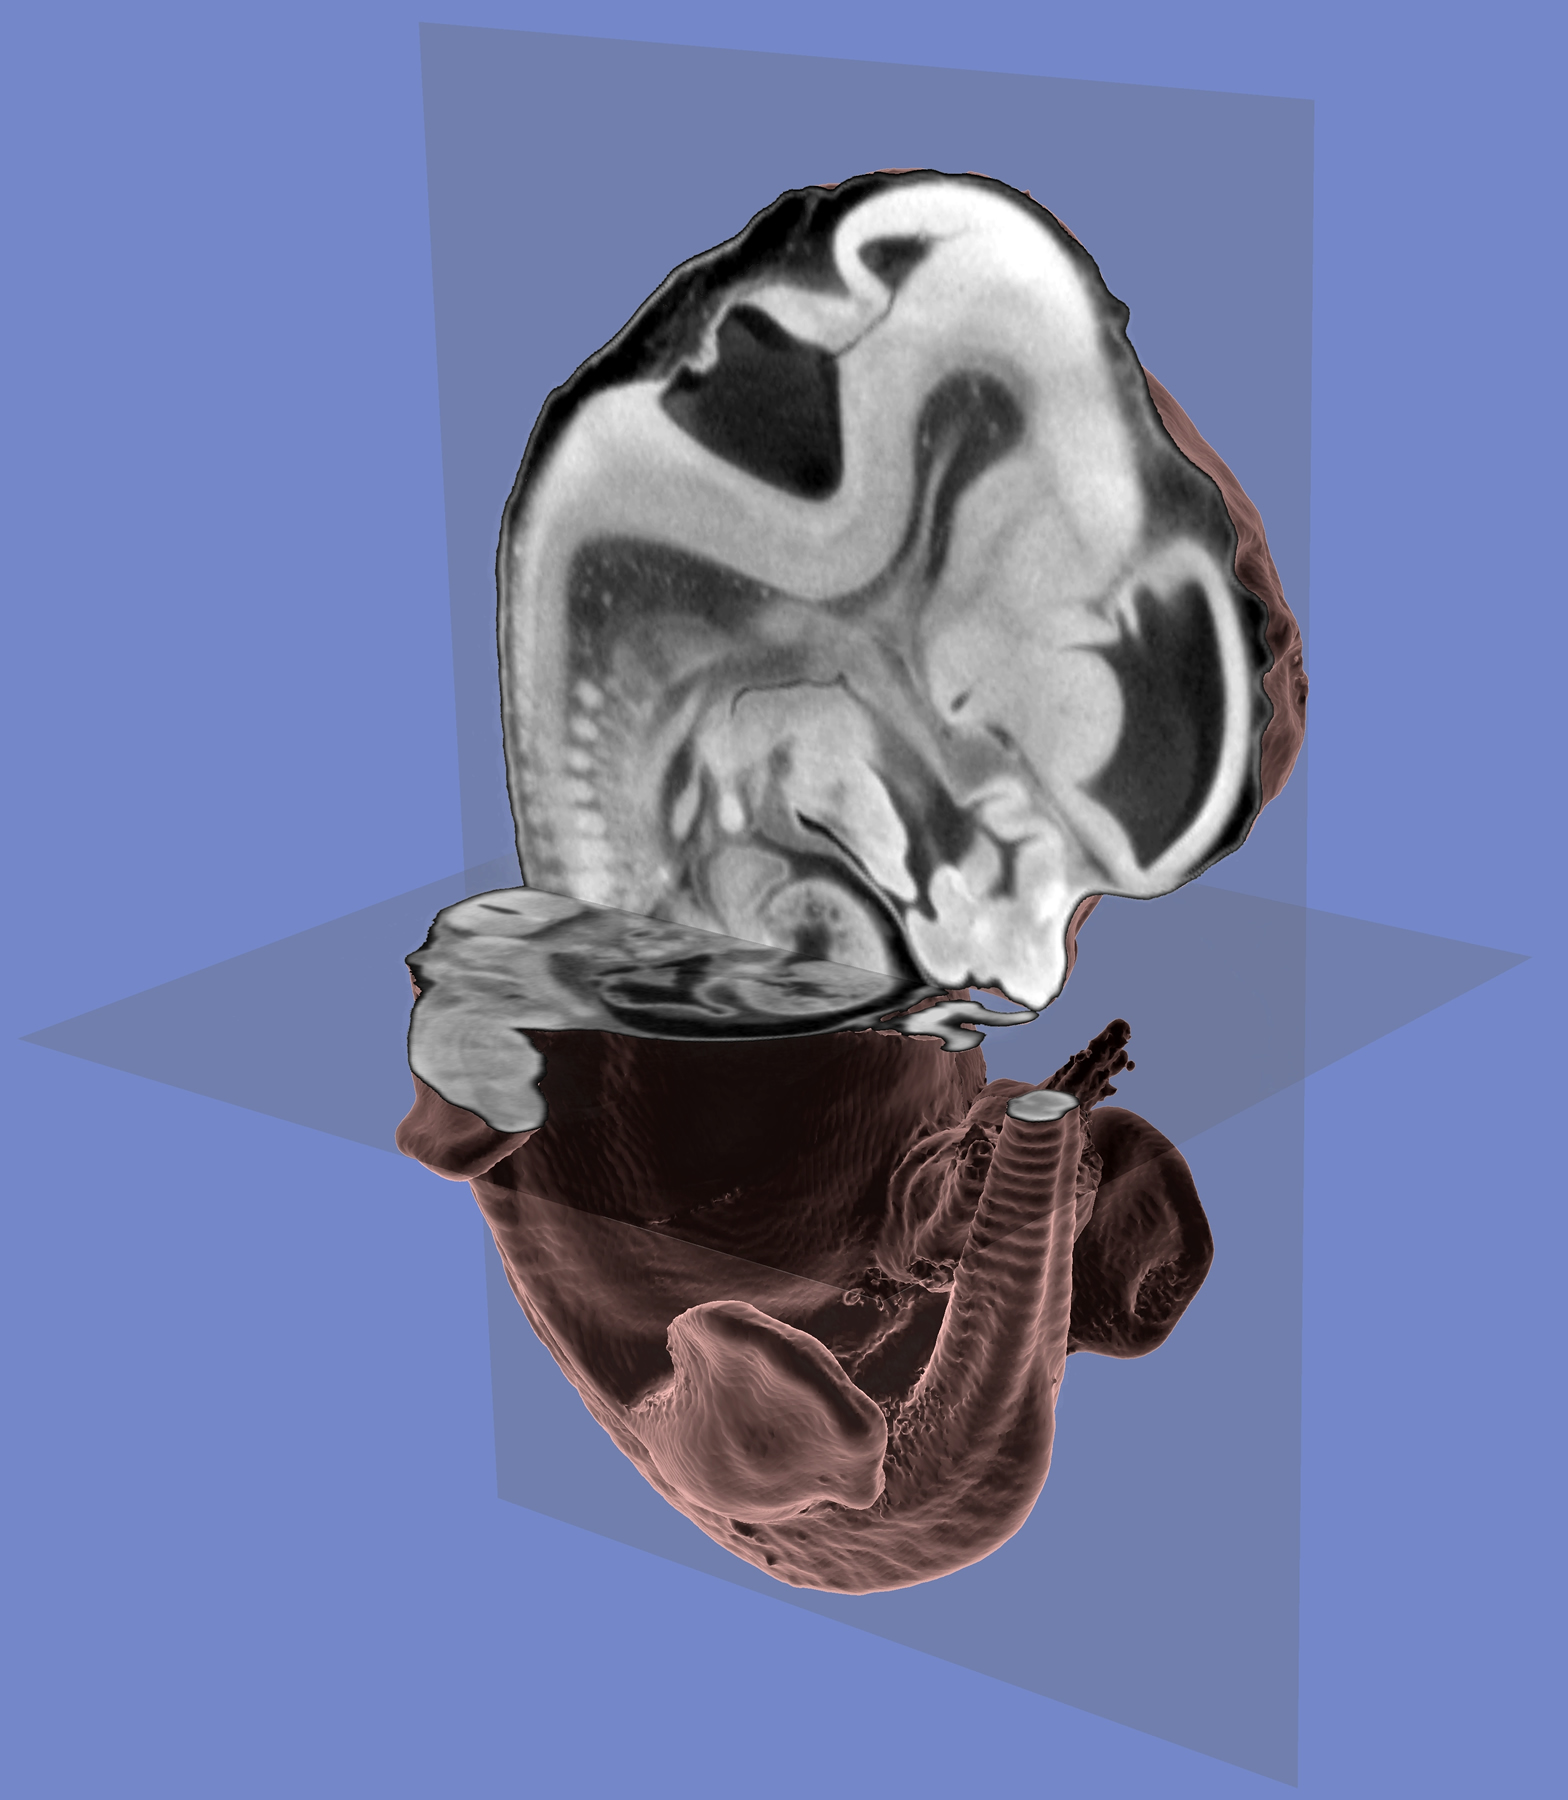 """This three-dimensional computer image of a mouse embryo was created using data collected during a CT (computerized tomography) scan of the embryo. The CT scan uses X-rays to make a series of images of """"slices"""" of the embryo. Those """"slices"""" then were combined and interpreted by computer software to create the 3-D image showing not only the embryo's exterior but its internal features. The new method should make it easier for geneticists to learn what various genes do; they can disable individual genes, then actually see internal and external defects in 3D images of the mutant mouse embryos. In this image, the mouse embryo's head is at the top, its tail is visible on the right side of the bottom part of the image, and its rear legs are on either side of the tail."""